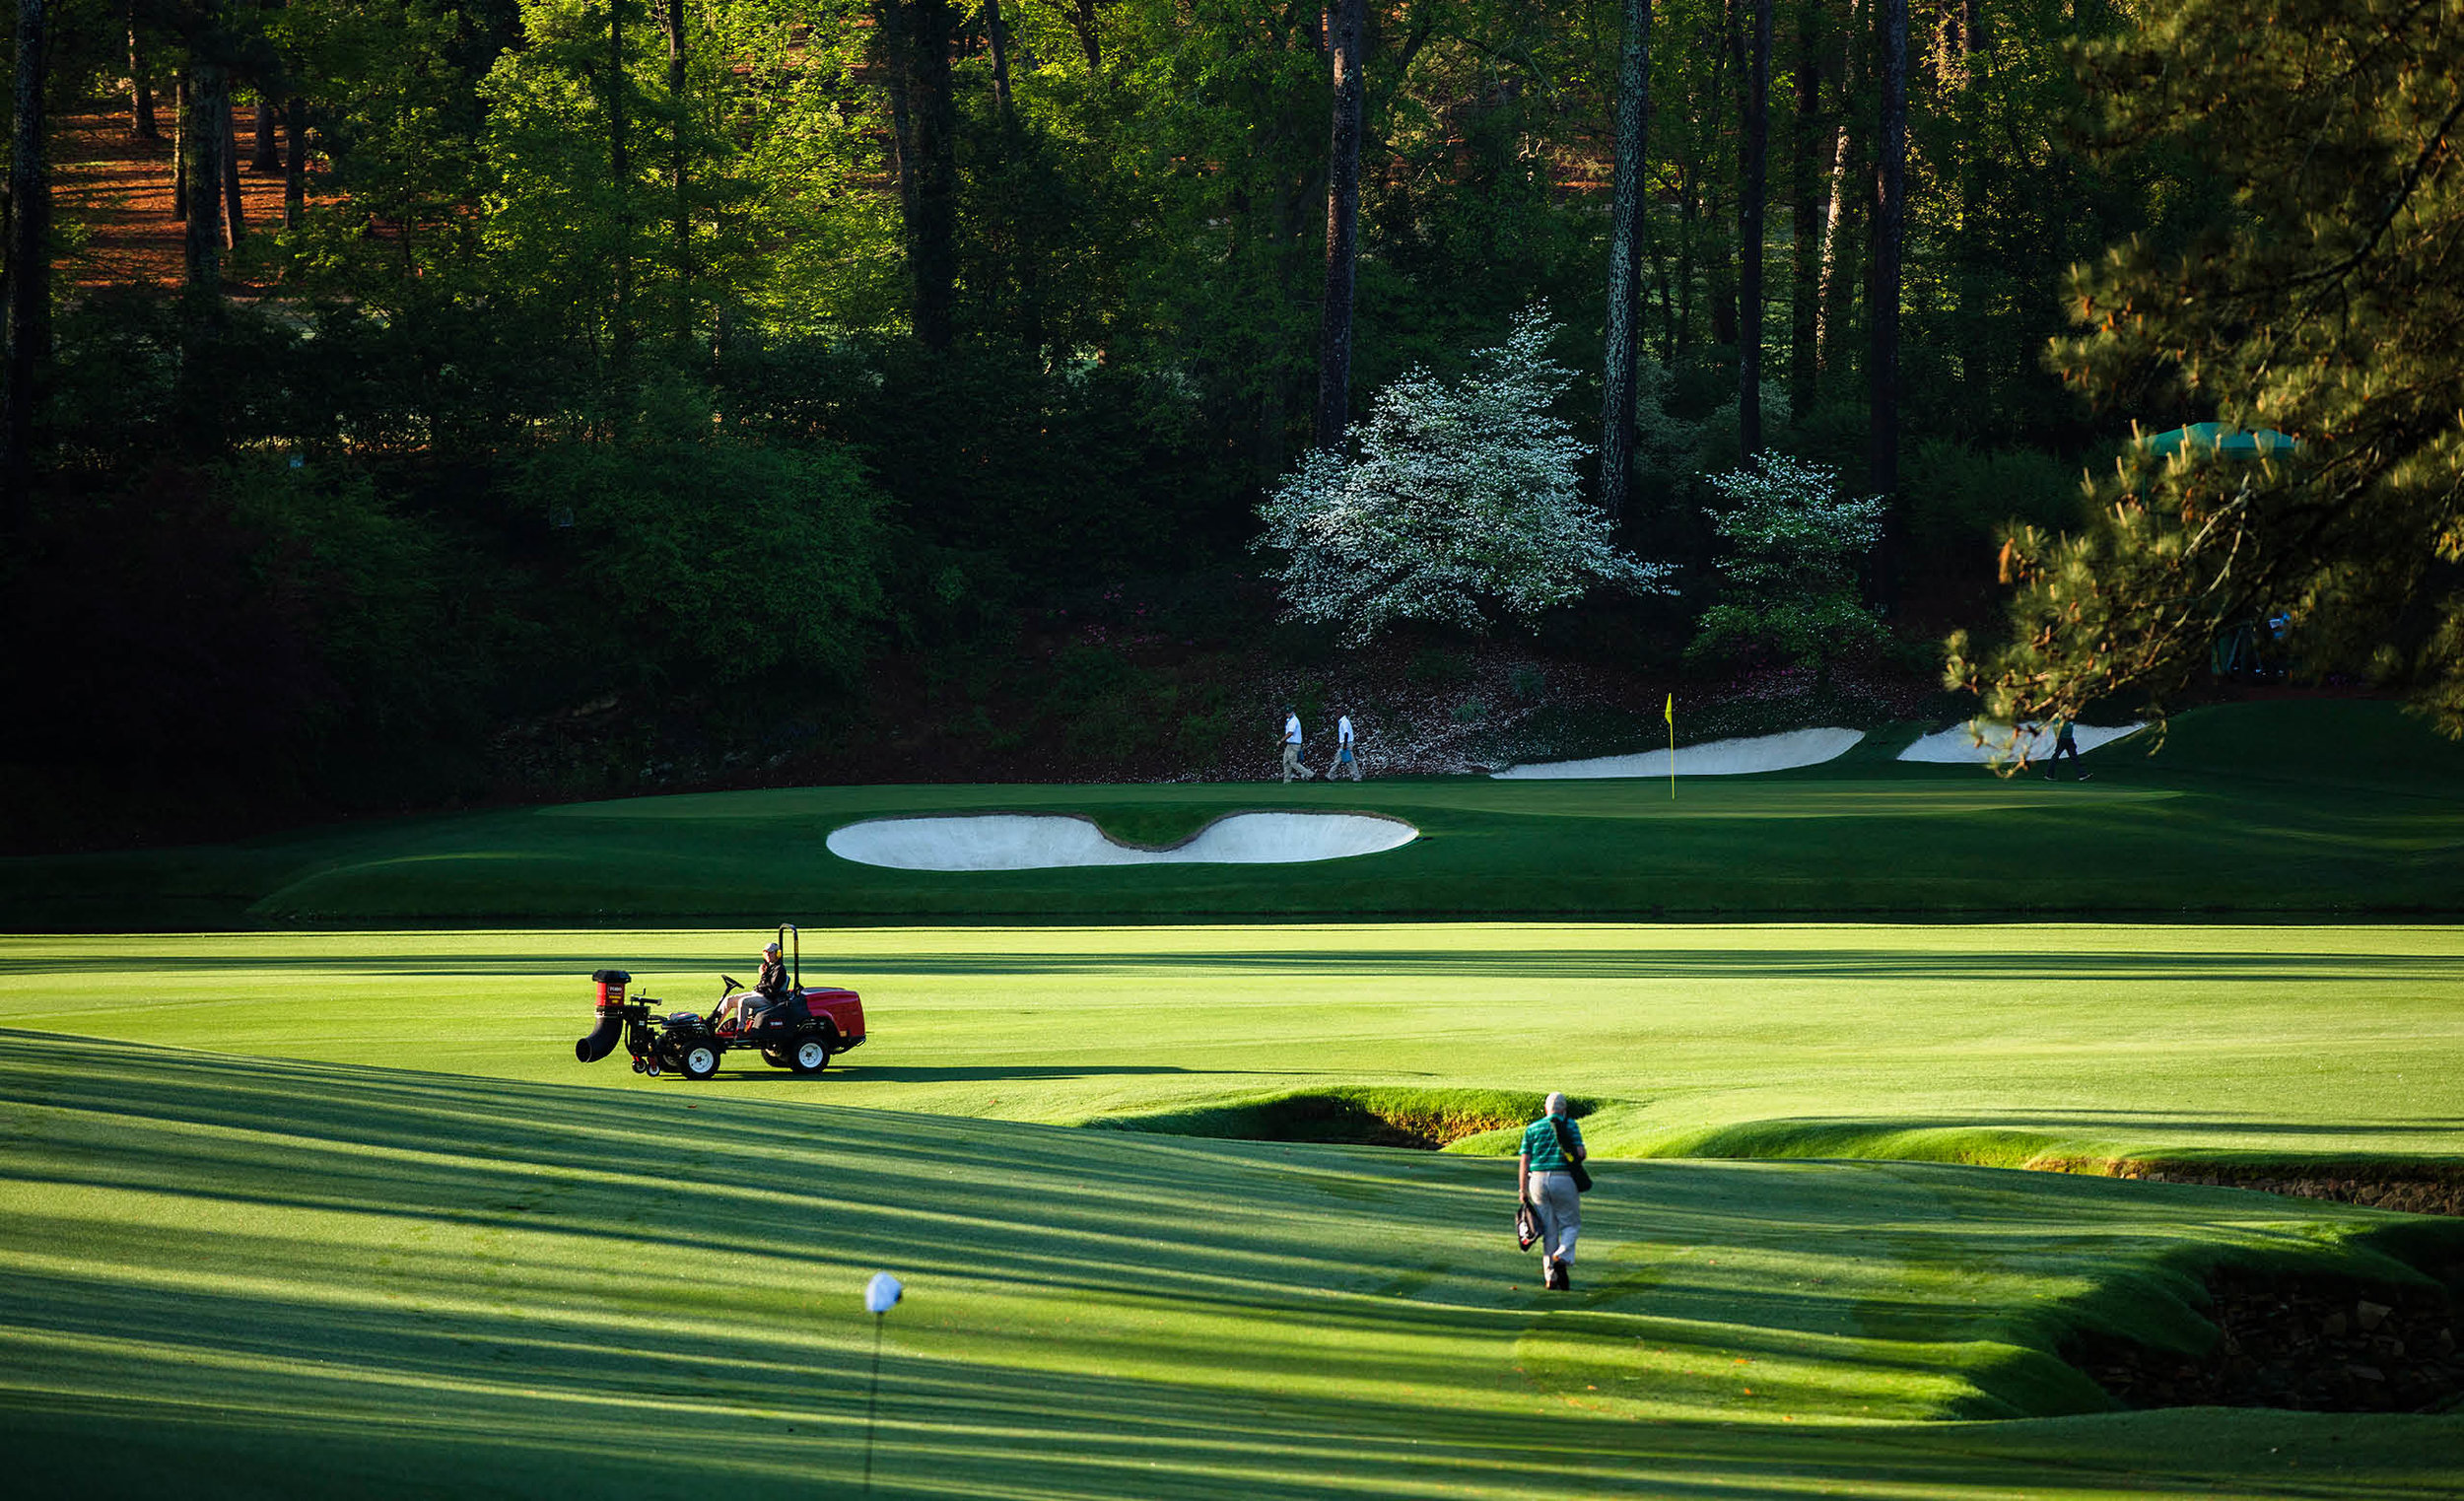 """If there's a golf course in heaven, I hope it's like Augusta National."" - Gary Player"